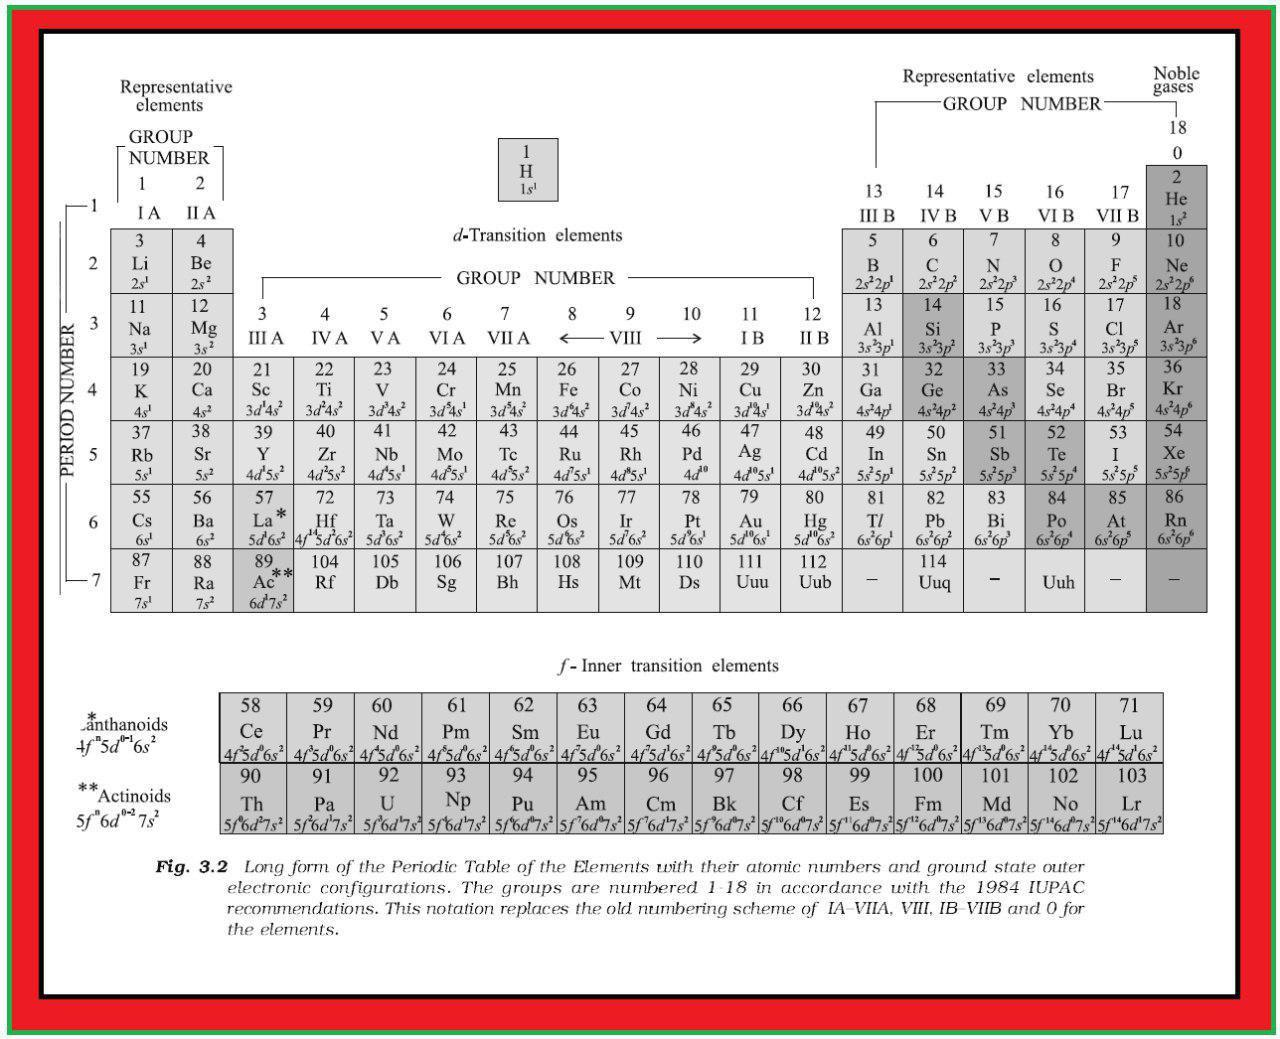 Samarium periodic table image collections periodic table images uub periodic table image collections periodic table images periodic table uuu choice image periodic table images gamestrikefo Image collections